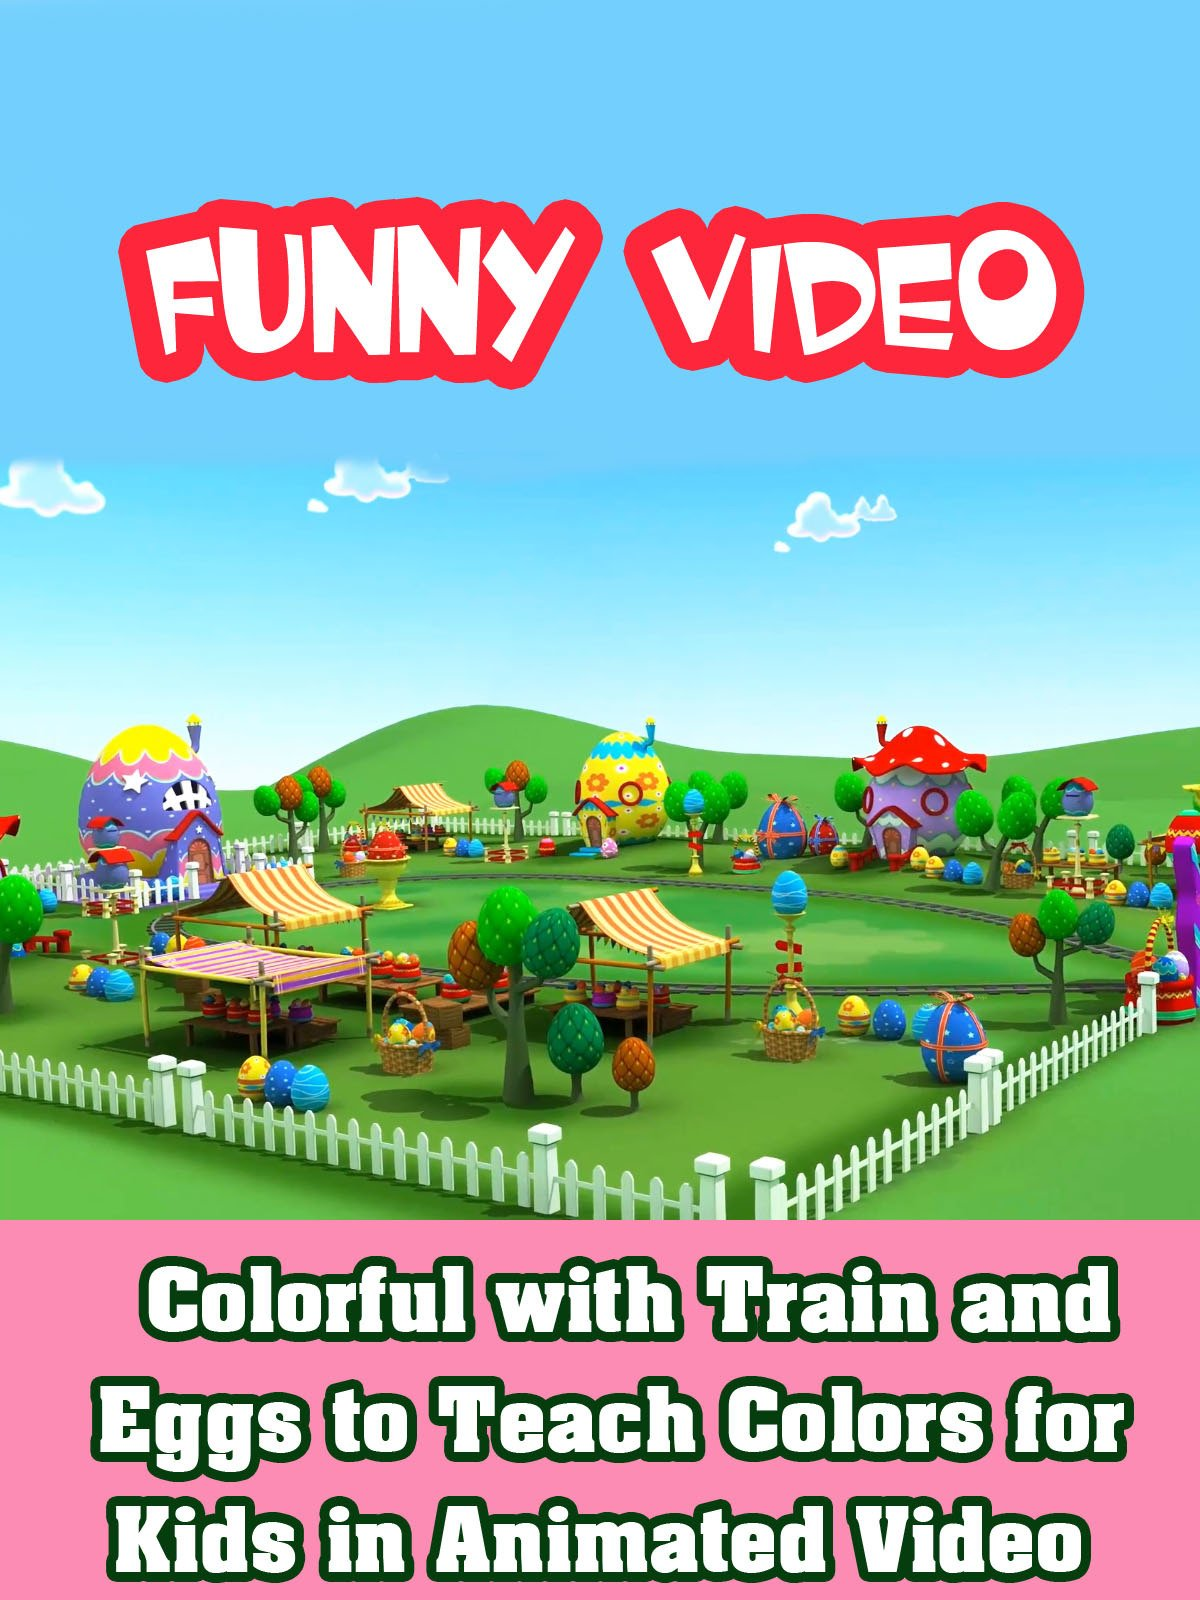 Colorful with Train and Eggs to Teach Colors for Kids in Animated Video